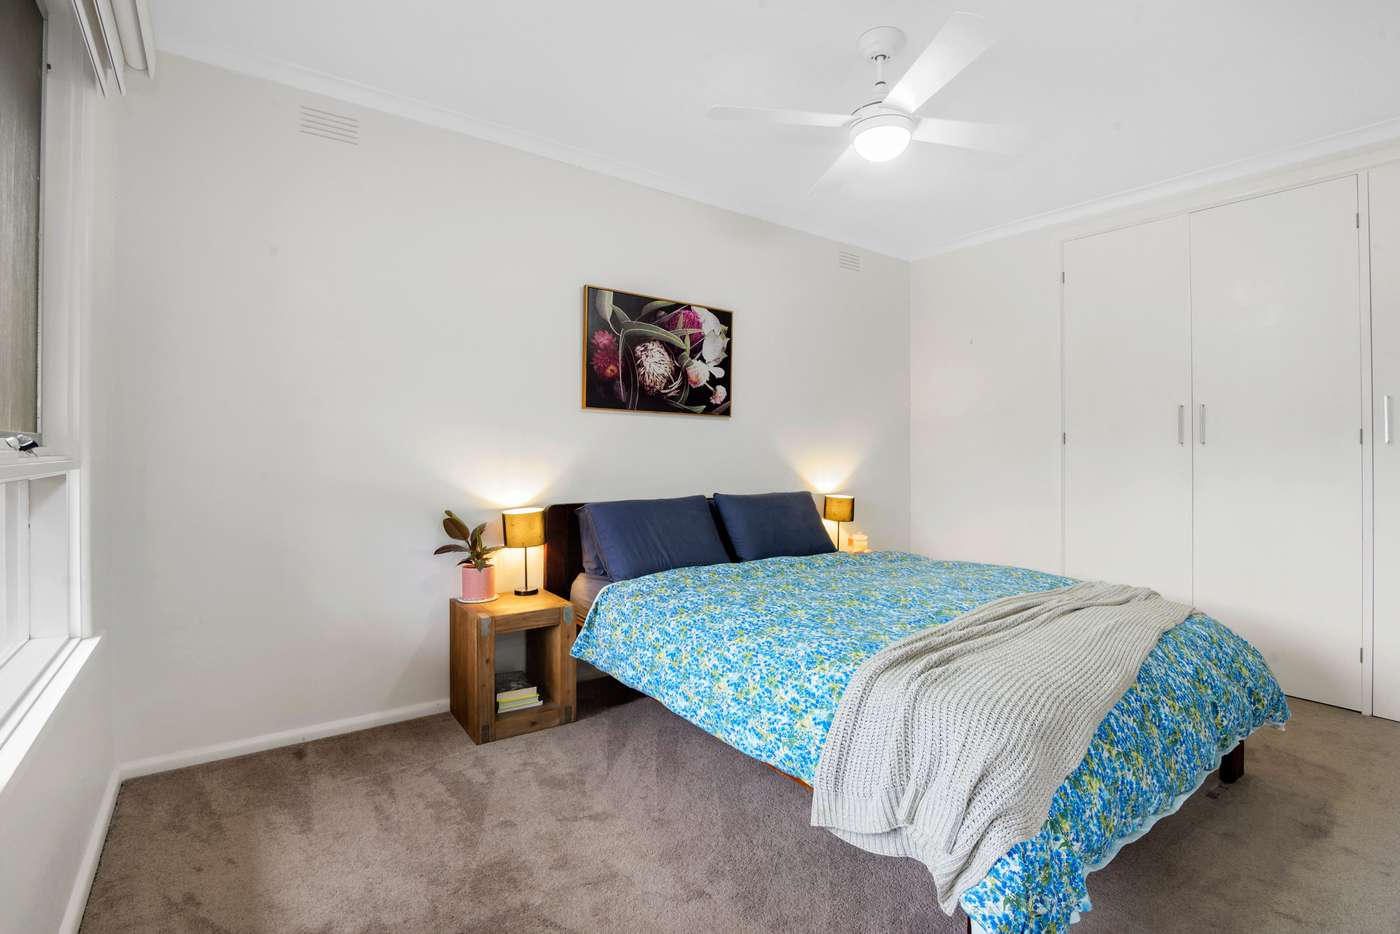 Sixth view of Homely unit listing, 2/16 Park Avenue, Glen Huntly VIC 3163